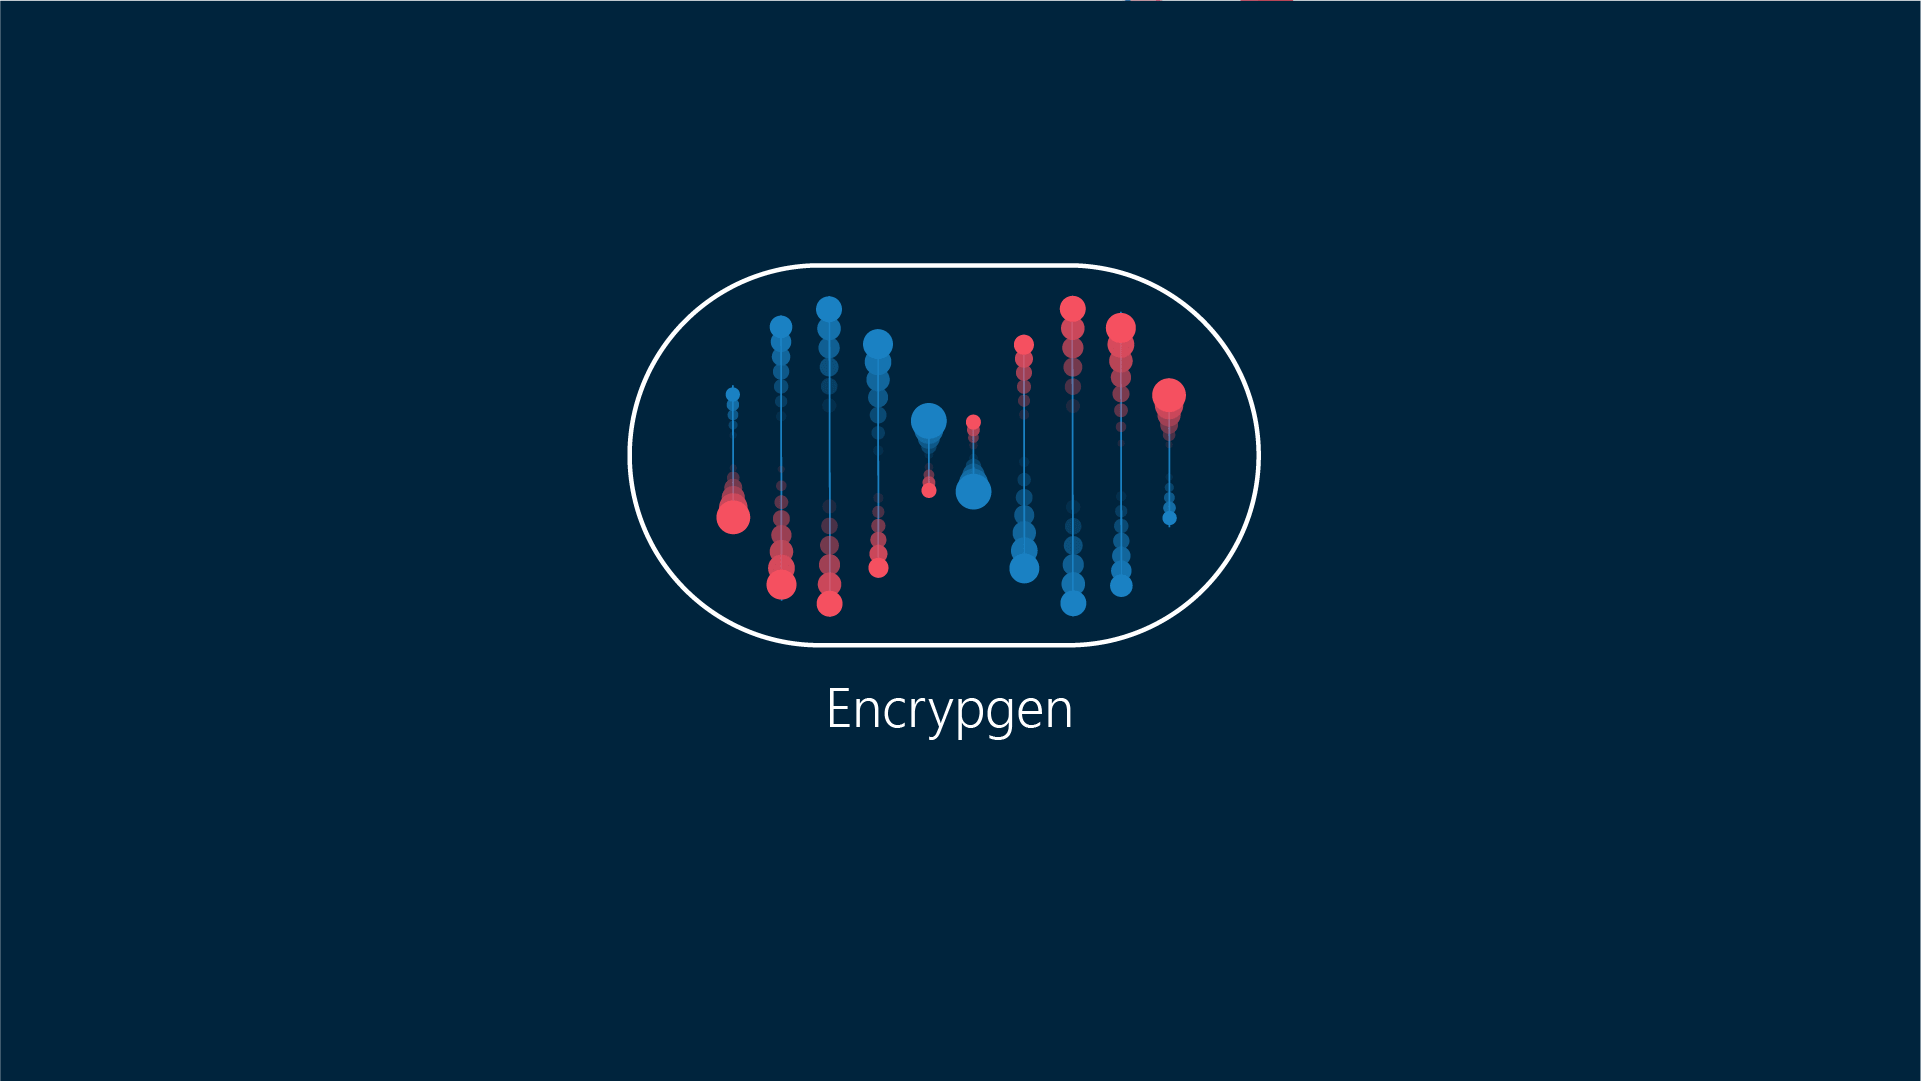 illustration for video motion graphics - Encrypgen